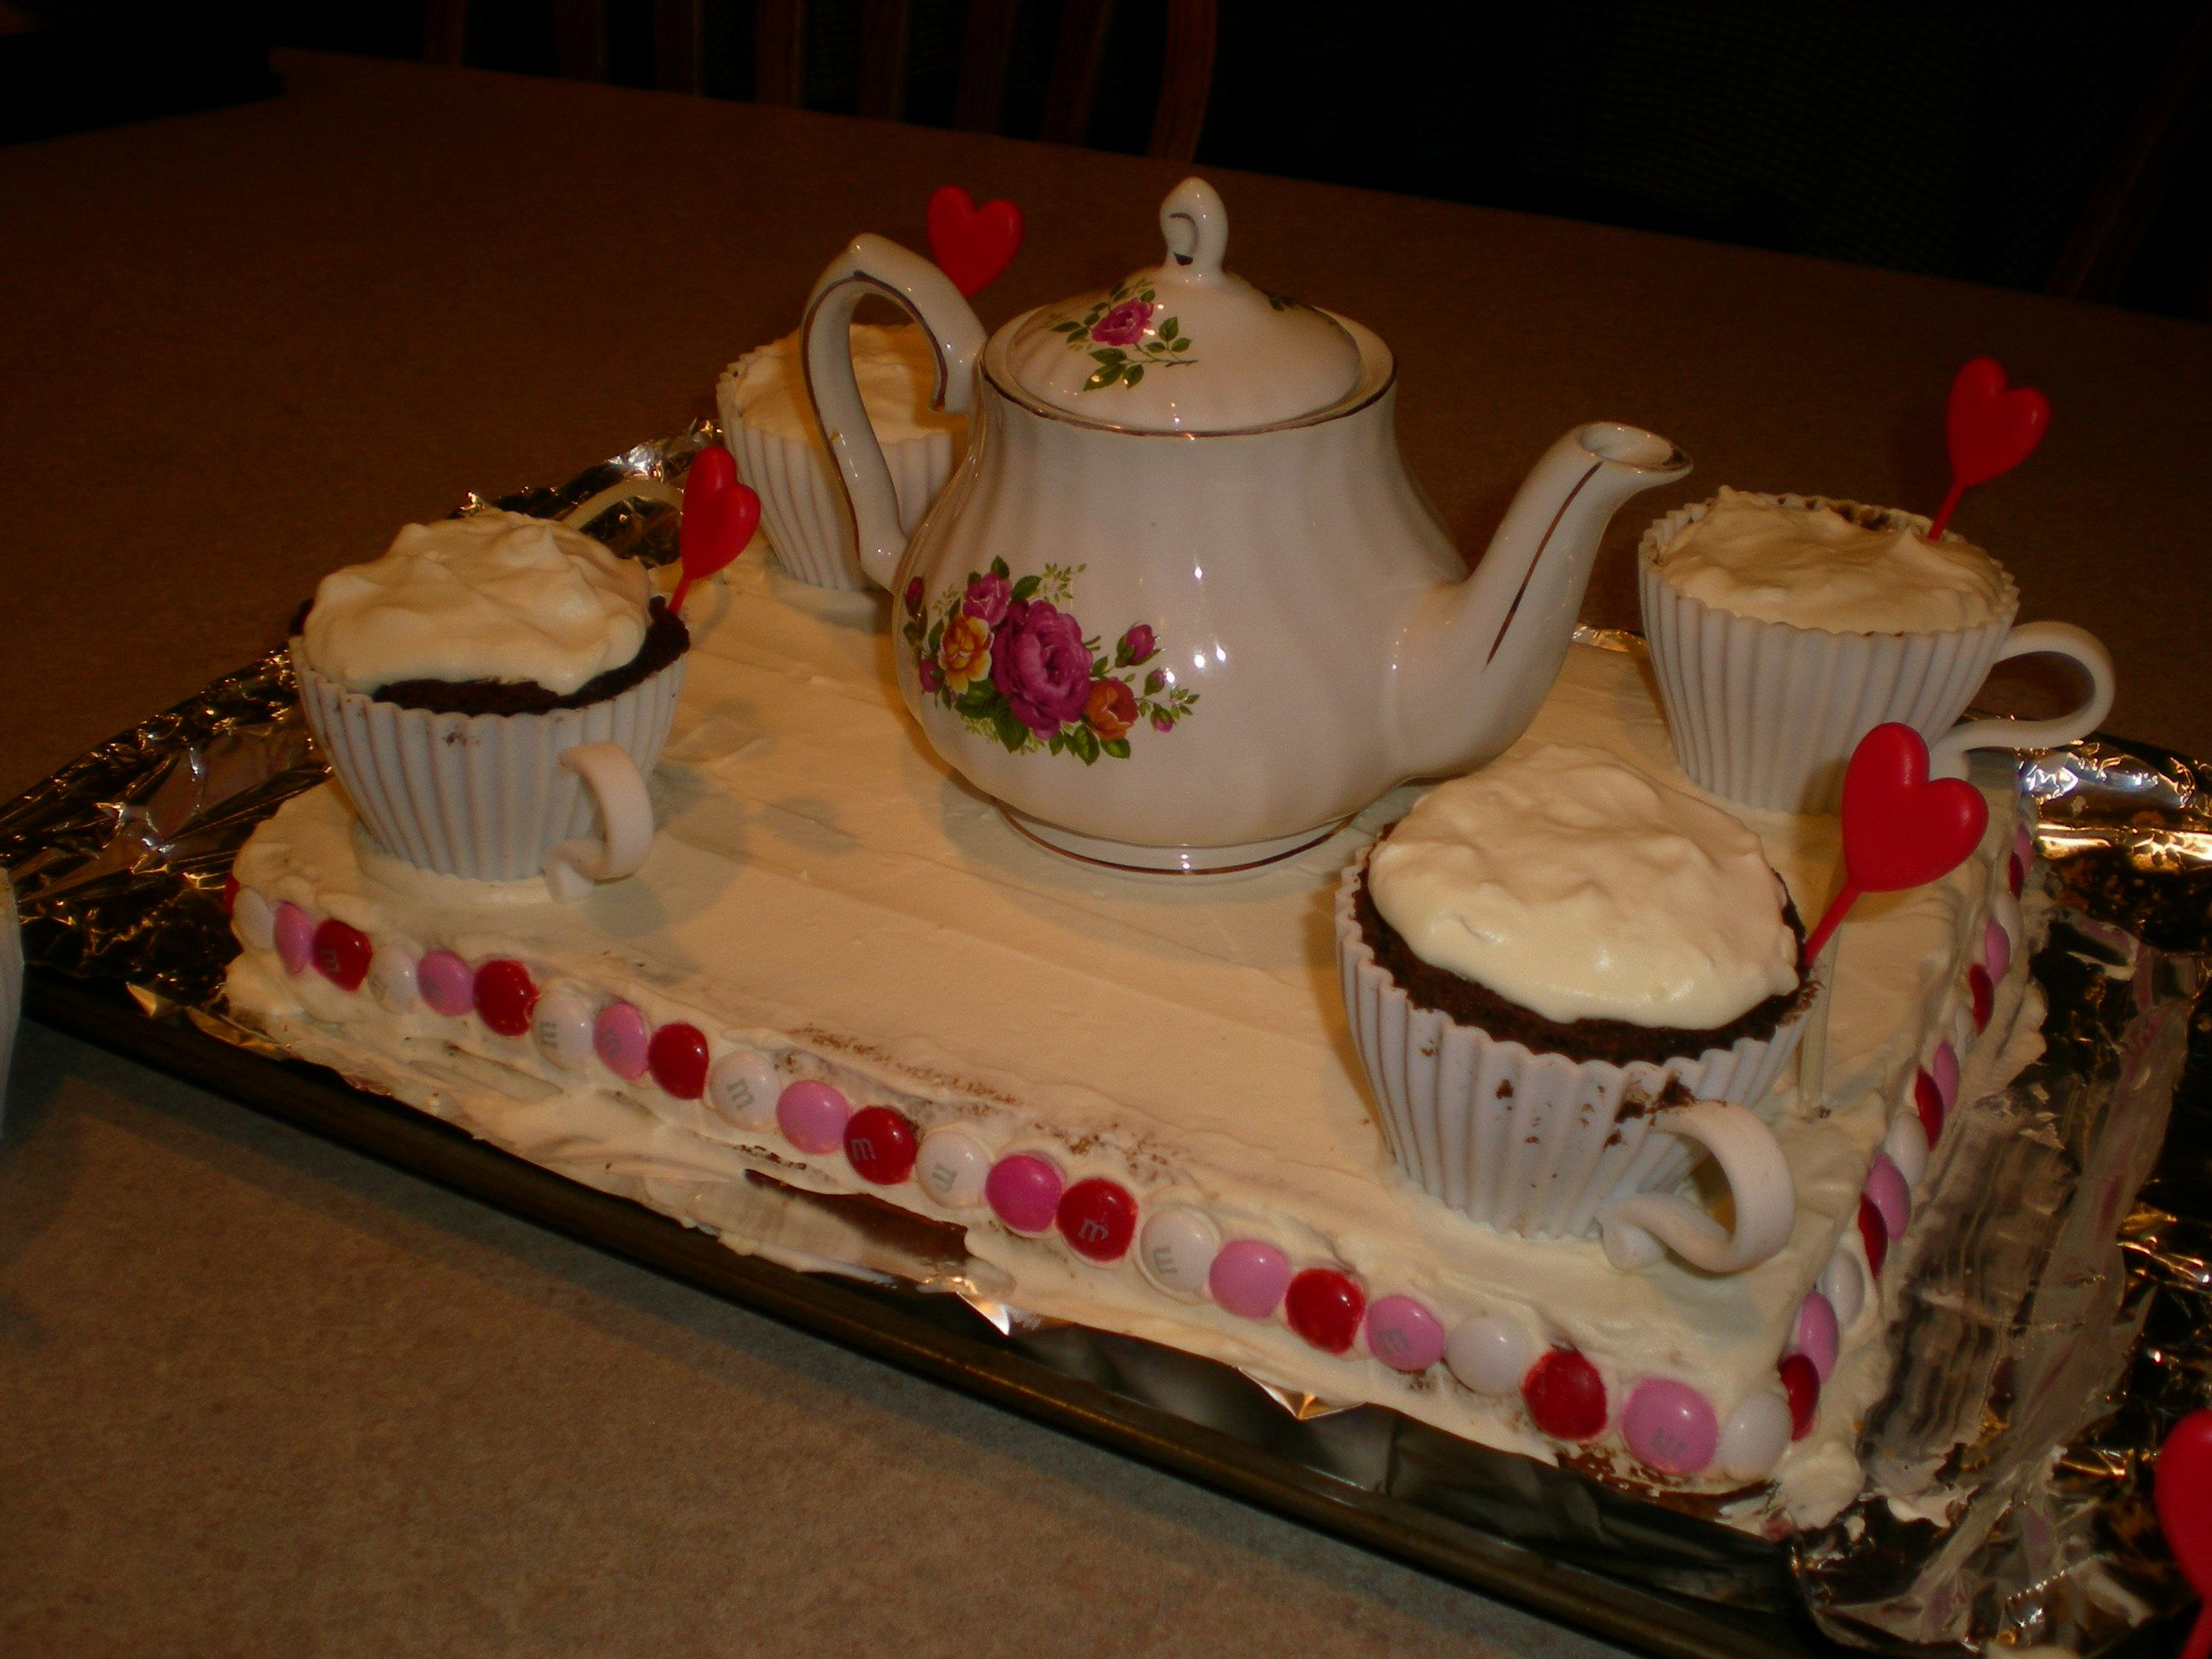 9x13 cake decorating ideas